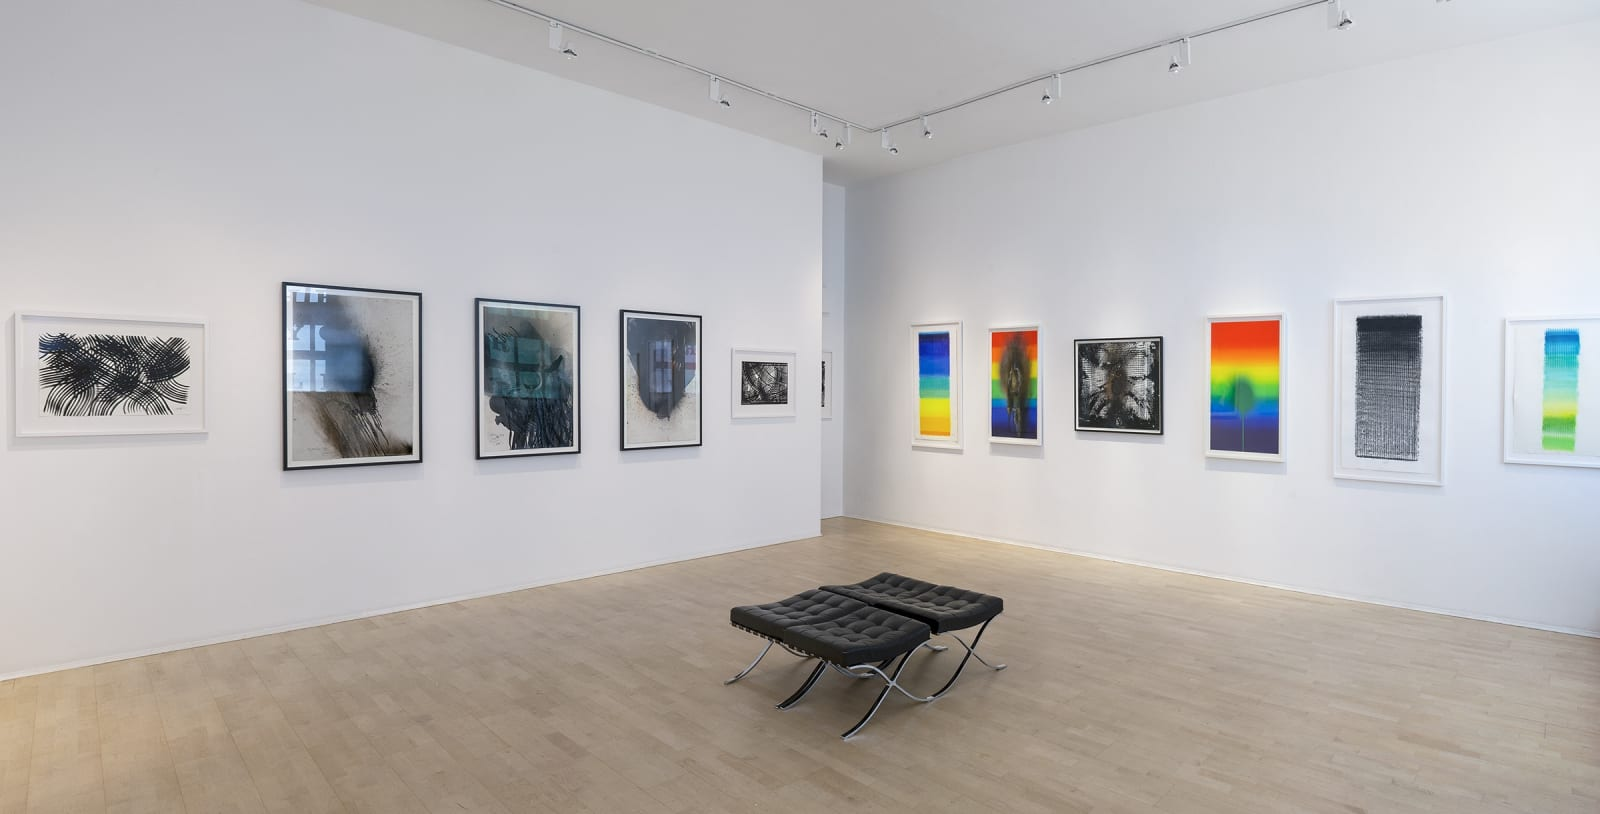 MACK PIENE UECKER | WORKS ON PAPER FROM 1962-2012 | 04 JUN - 24 JUL 2015